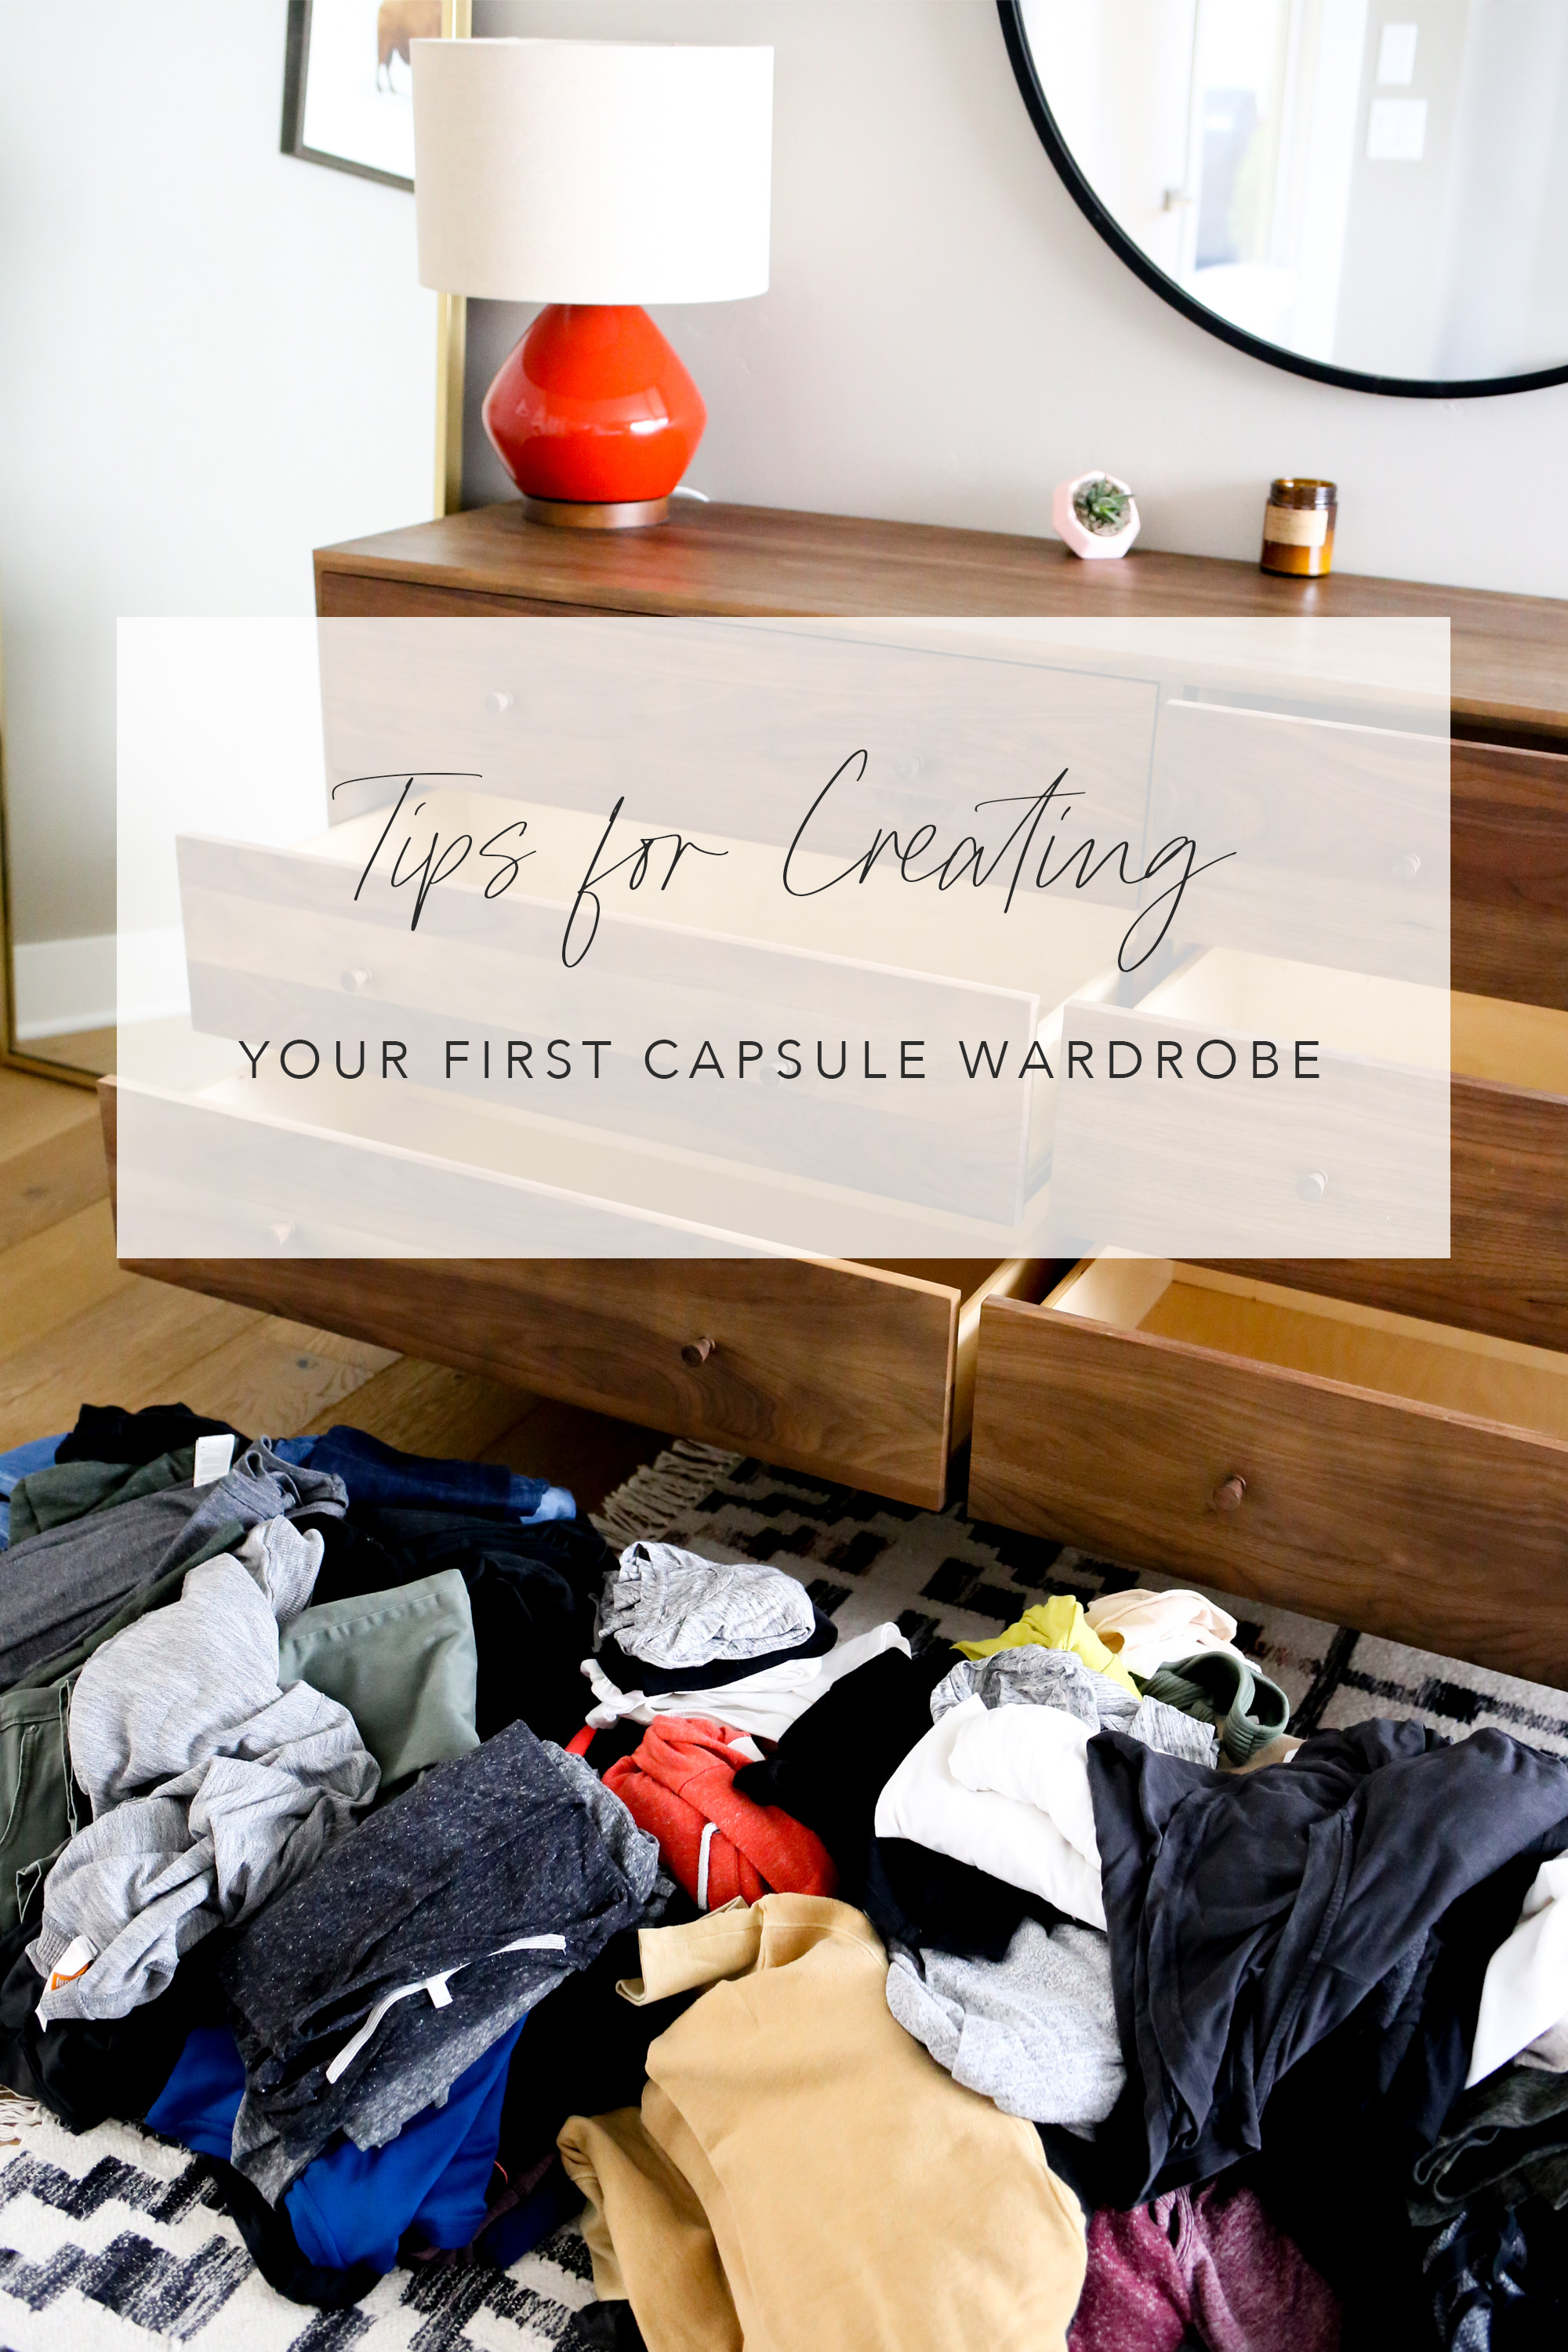 dresser with clothes pulled out and text tips for creating your first capsule wardrobe